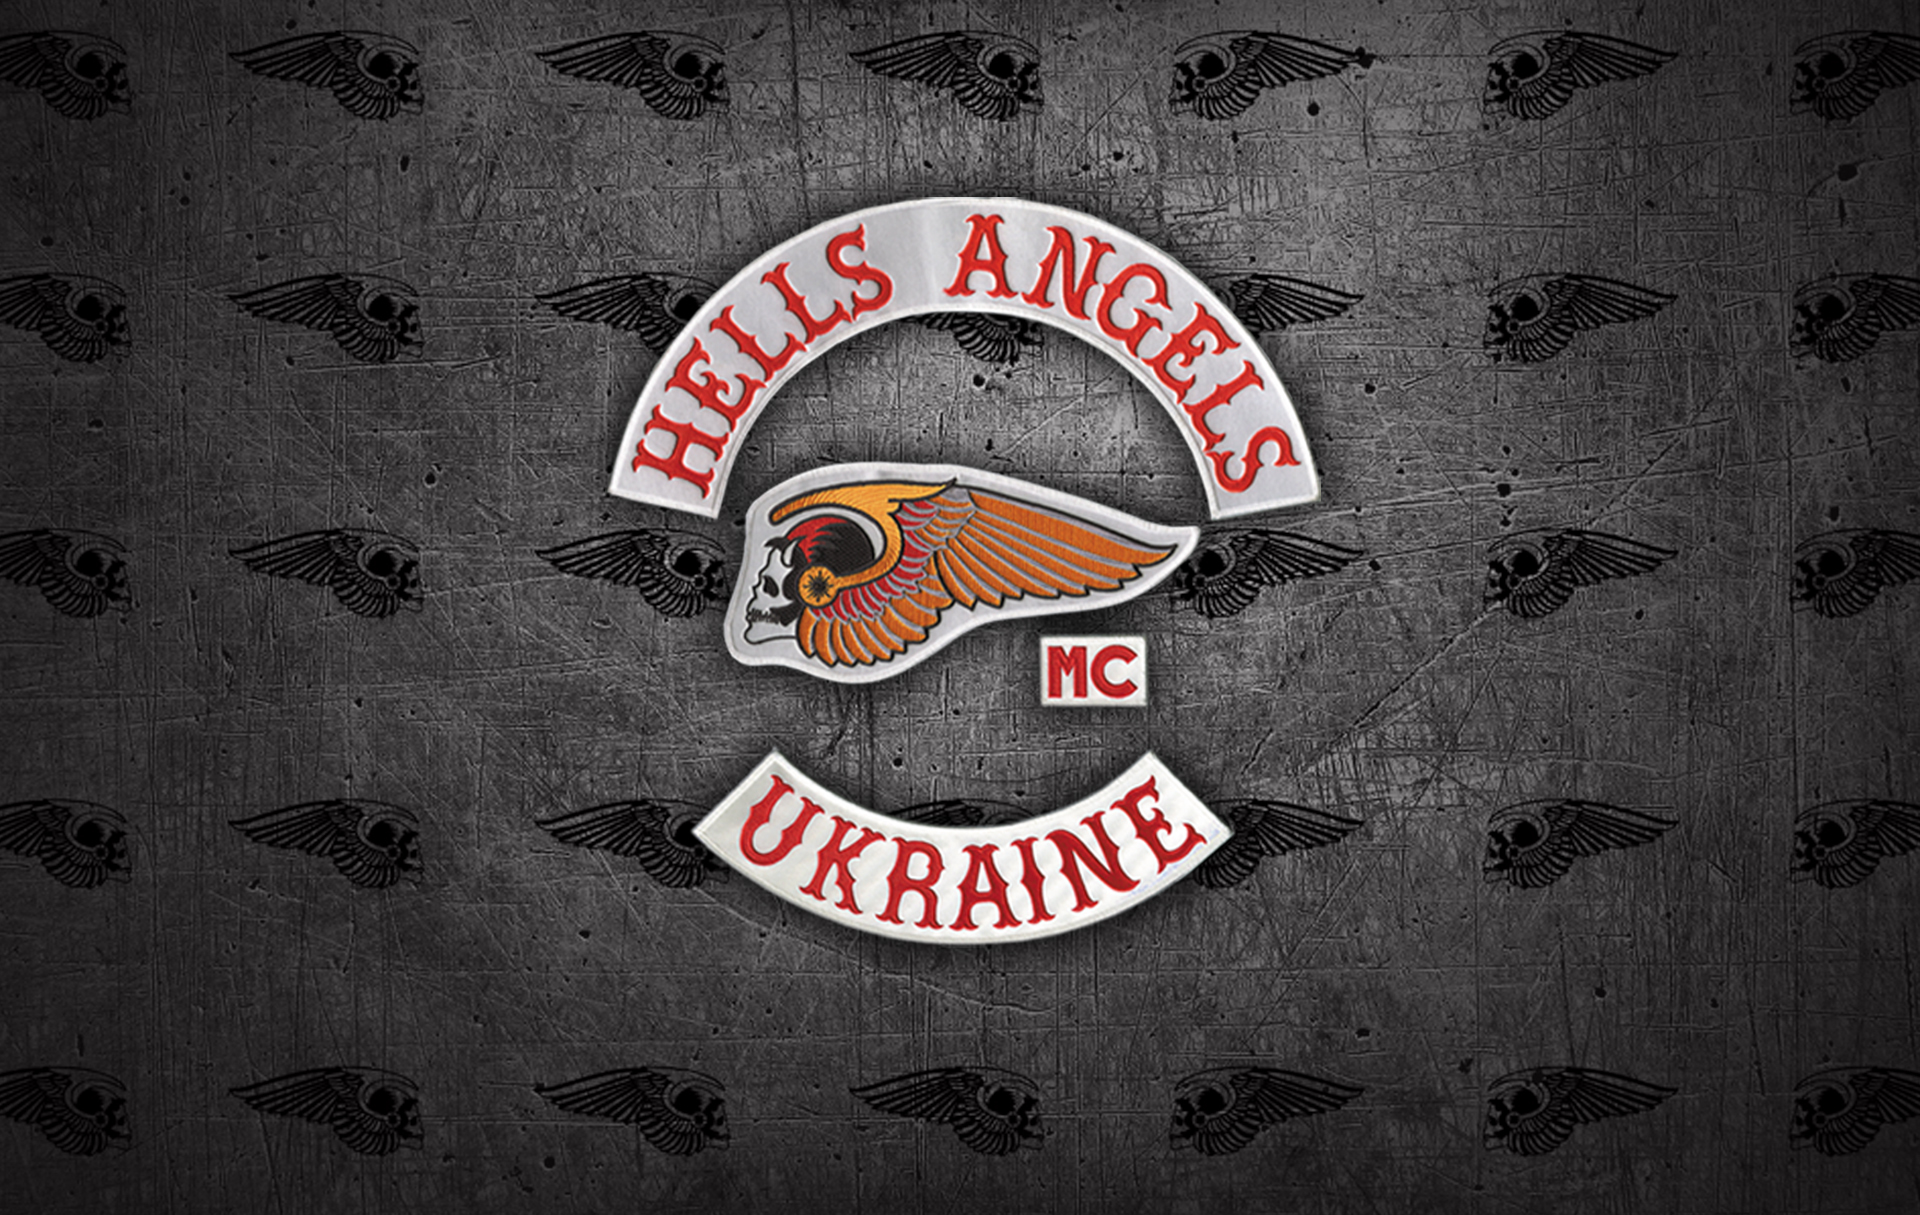 Hells Angels MC Ukraine